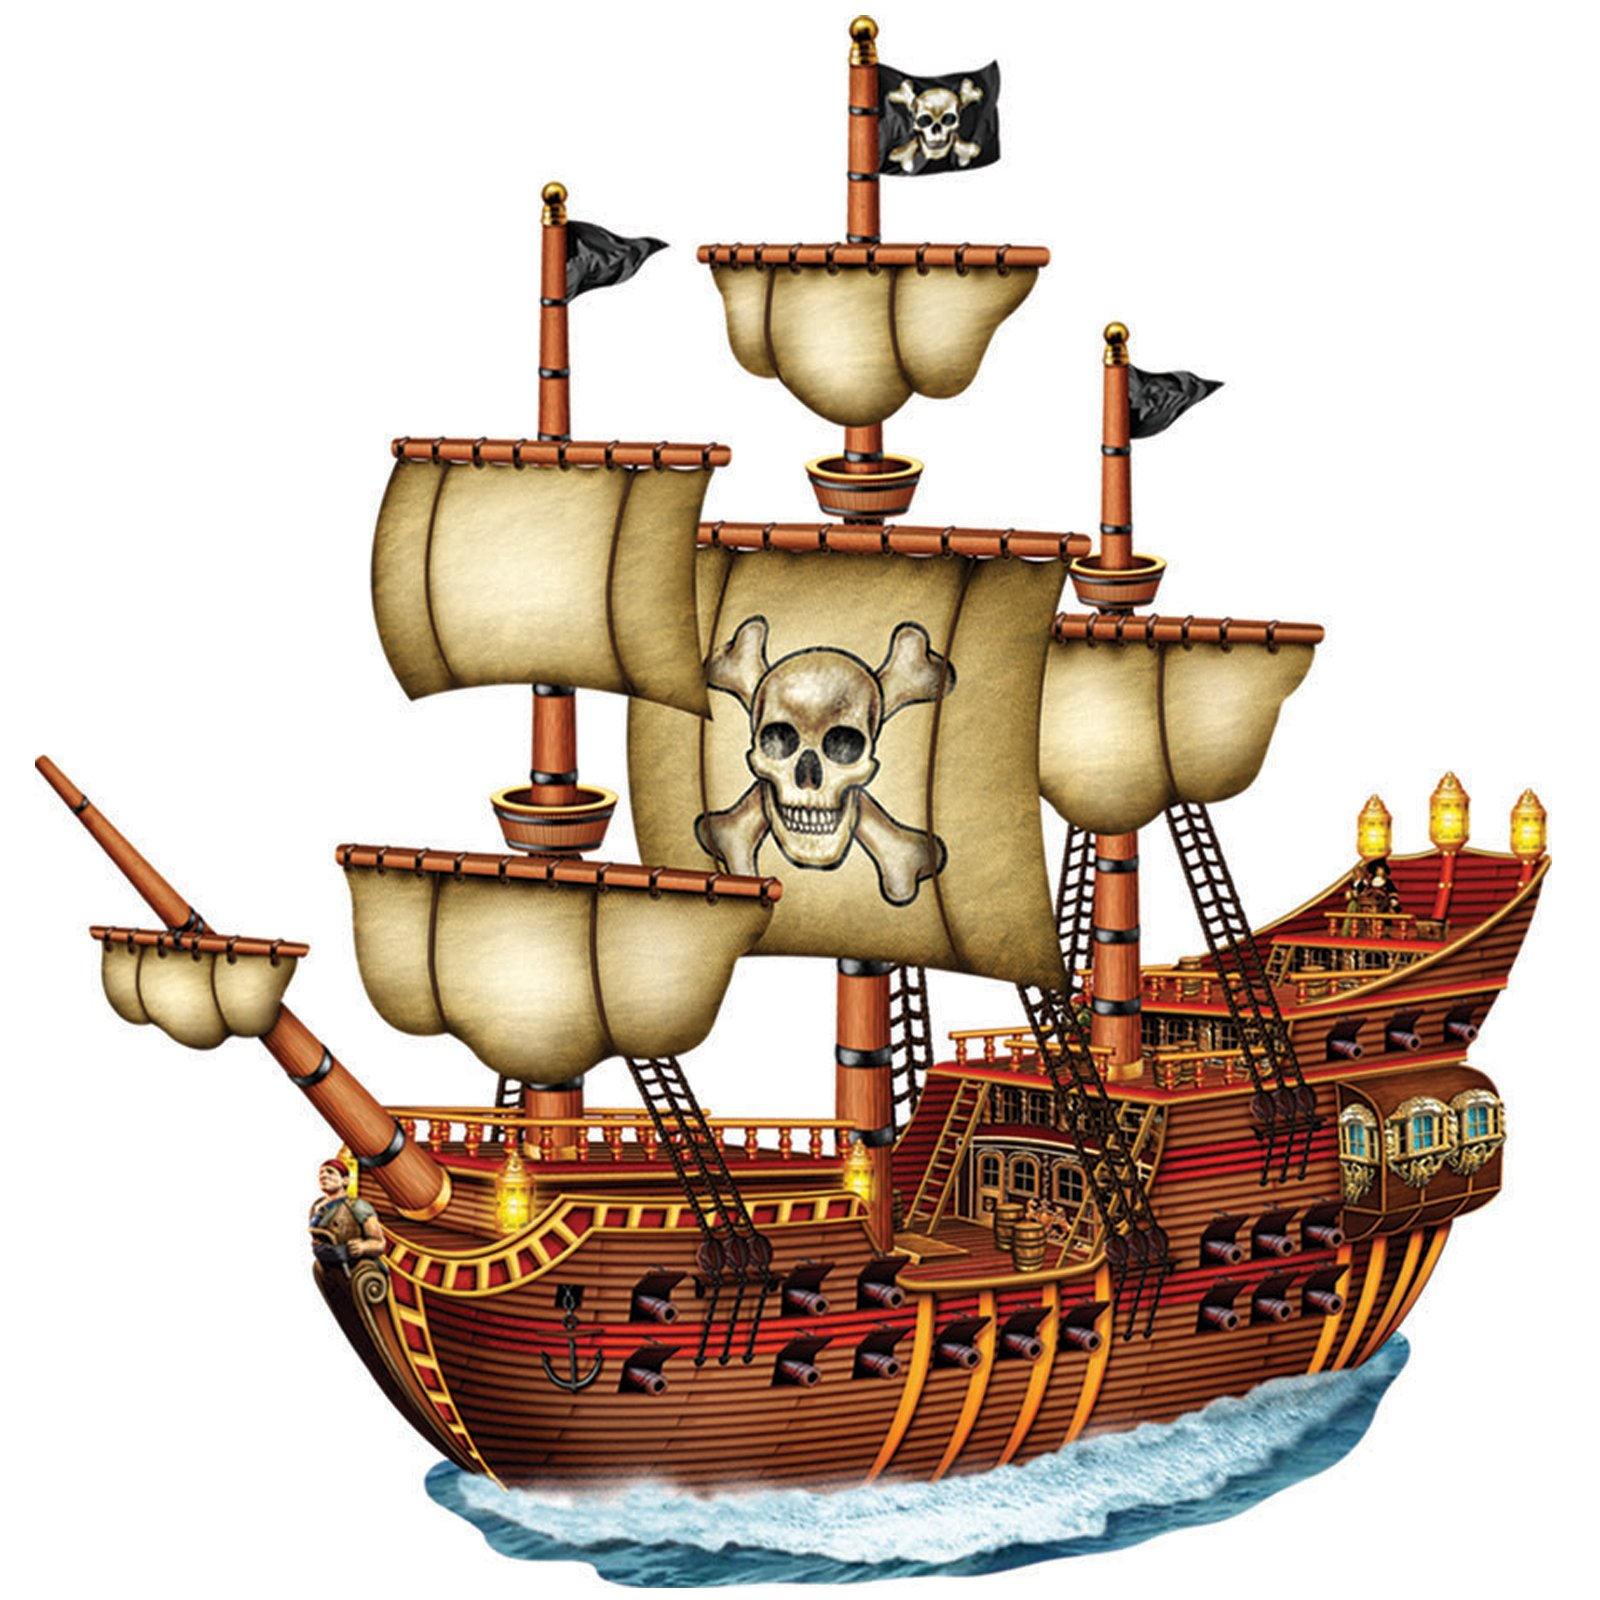 34 Cartoon Pirate Ships Free Cliparts That You Can Download To